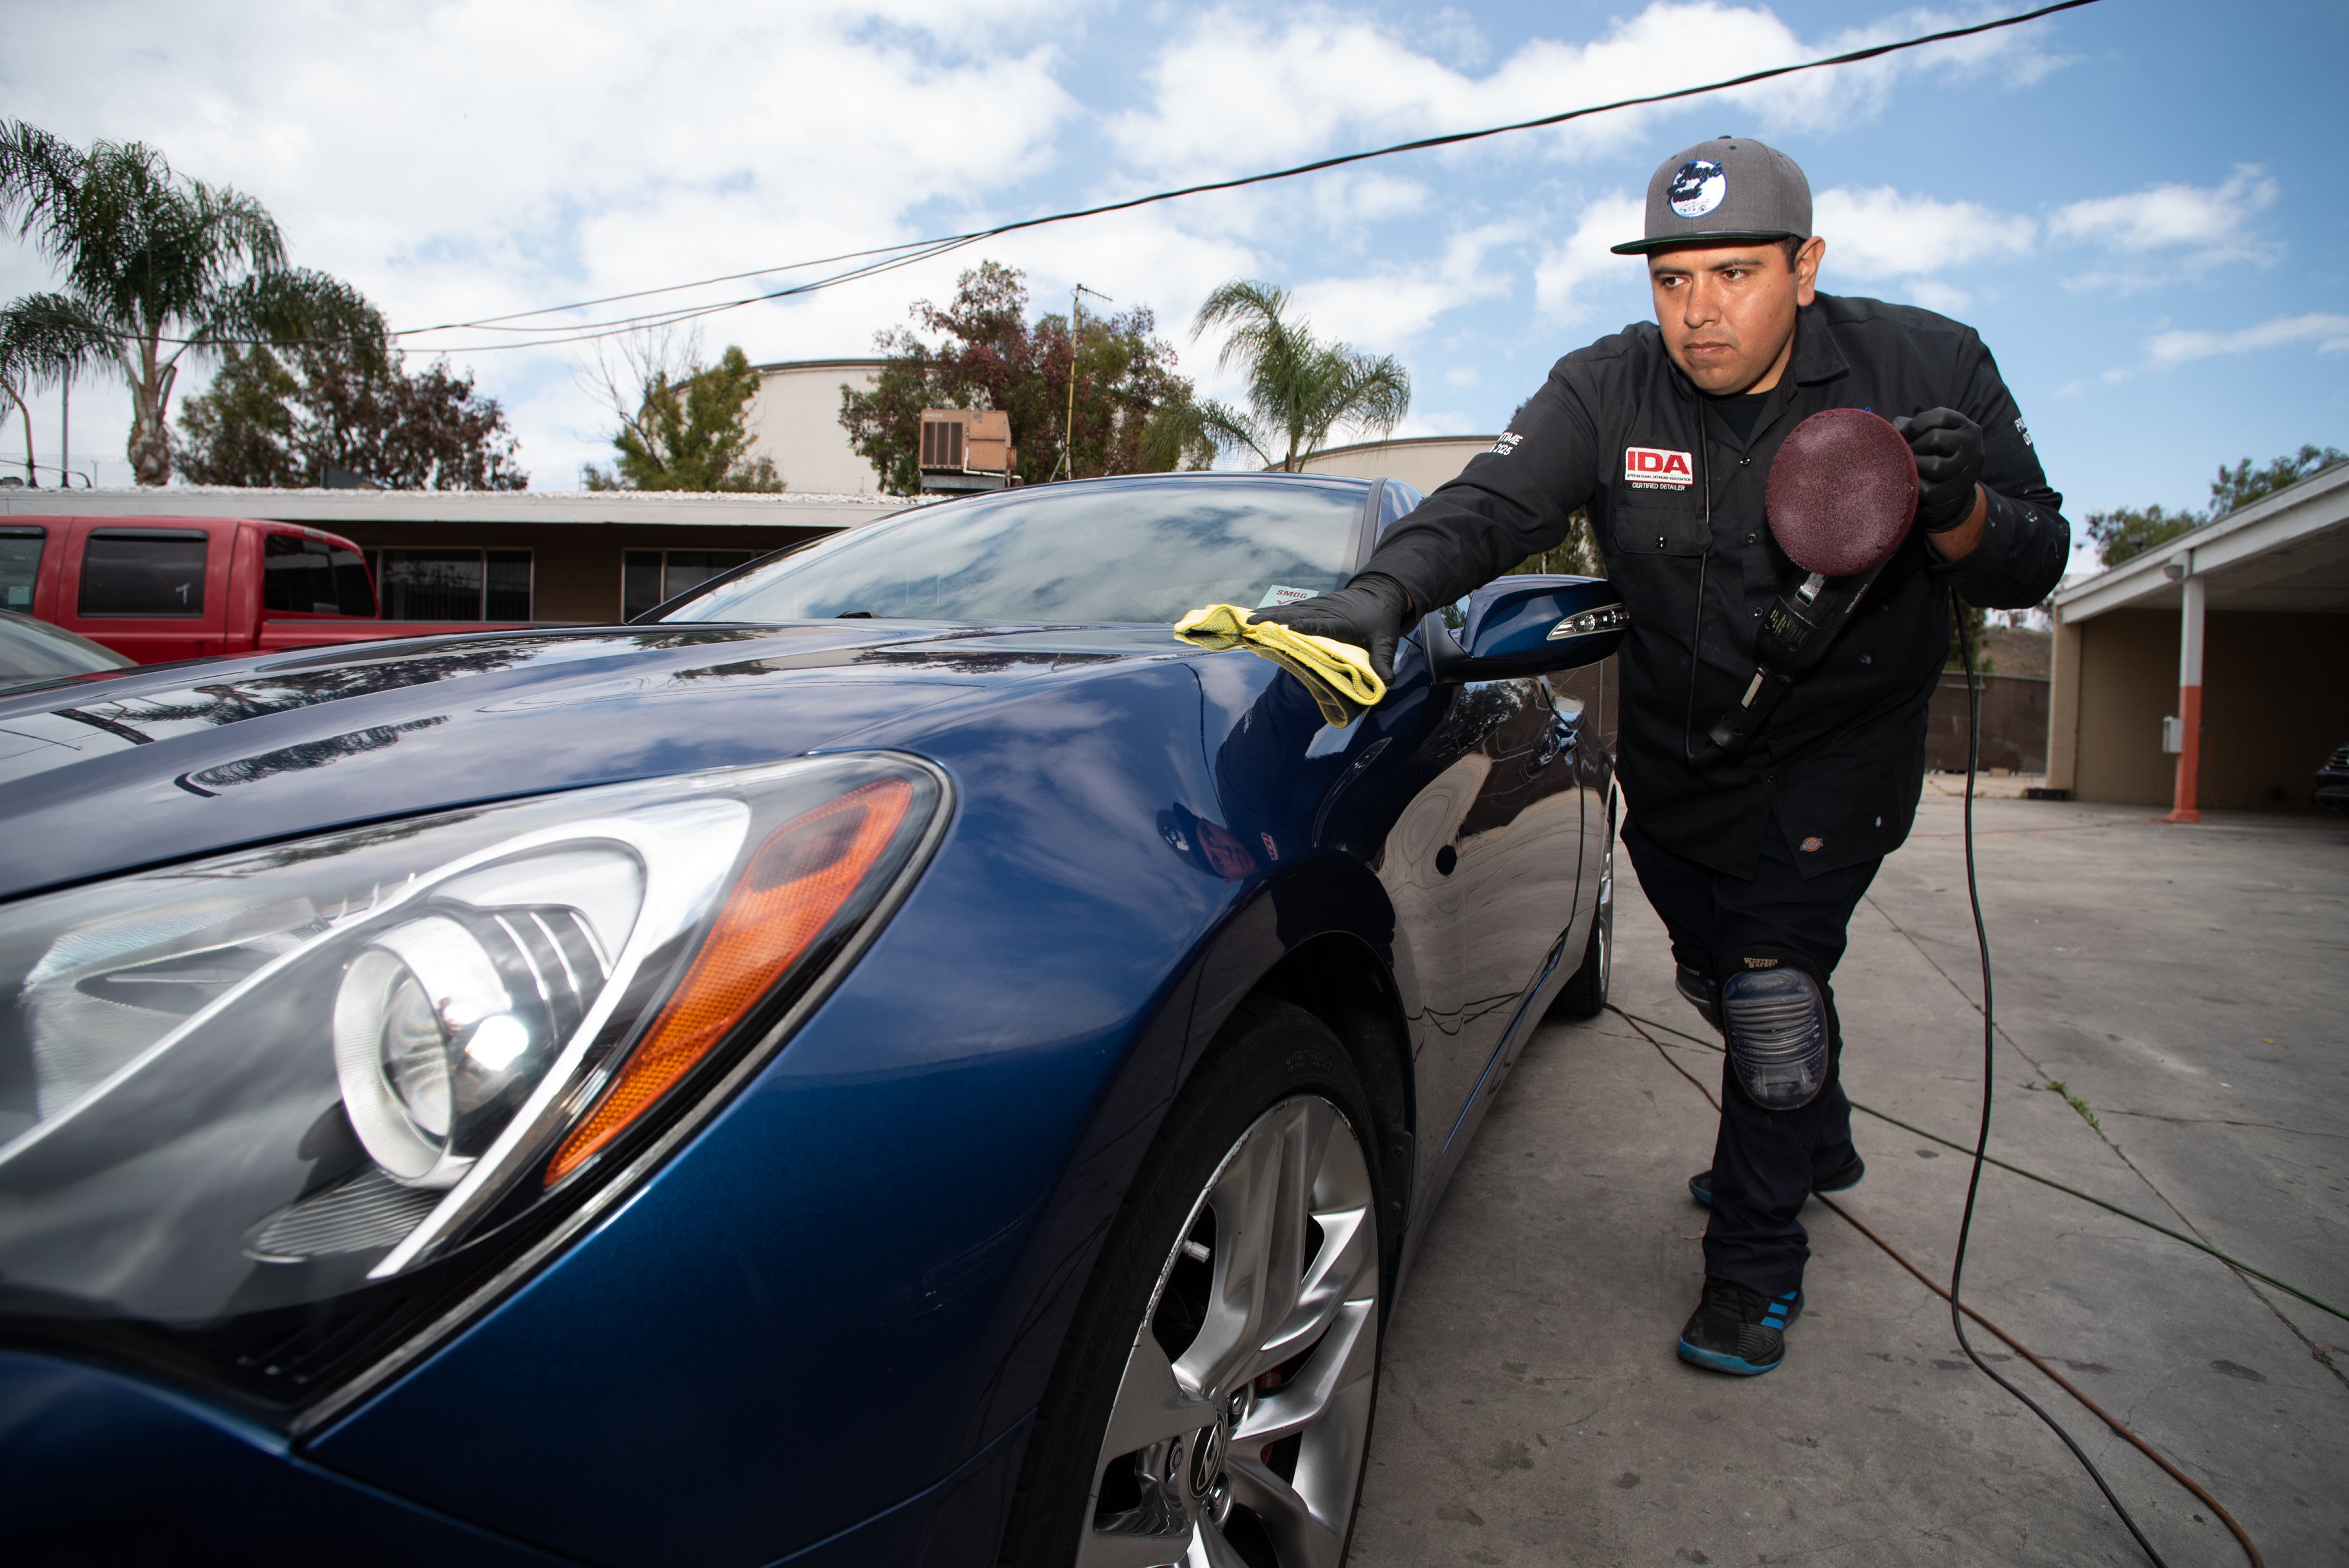 Ángel Rojas working on a car for his detail service businessin Los Angeles. Concept: Success Story: Ángel Rojas, Security and Efficiency Above All